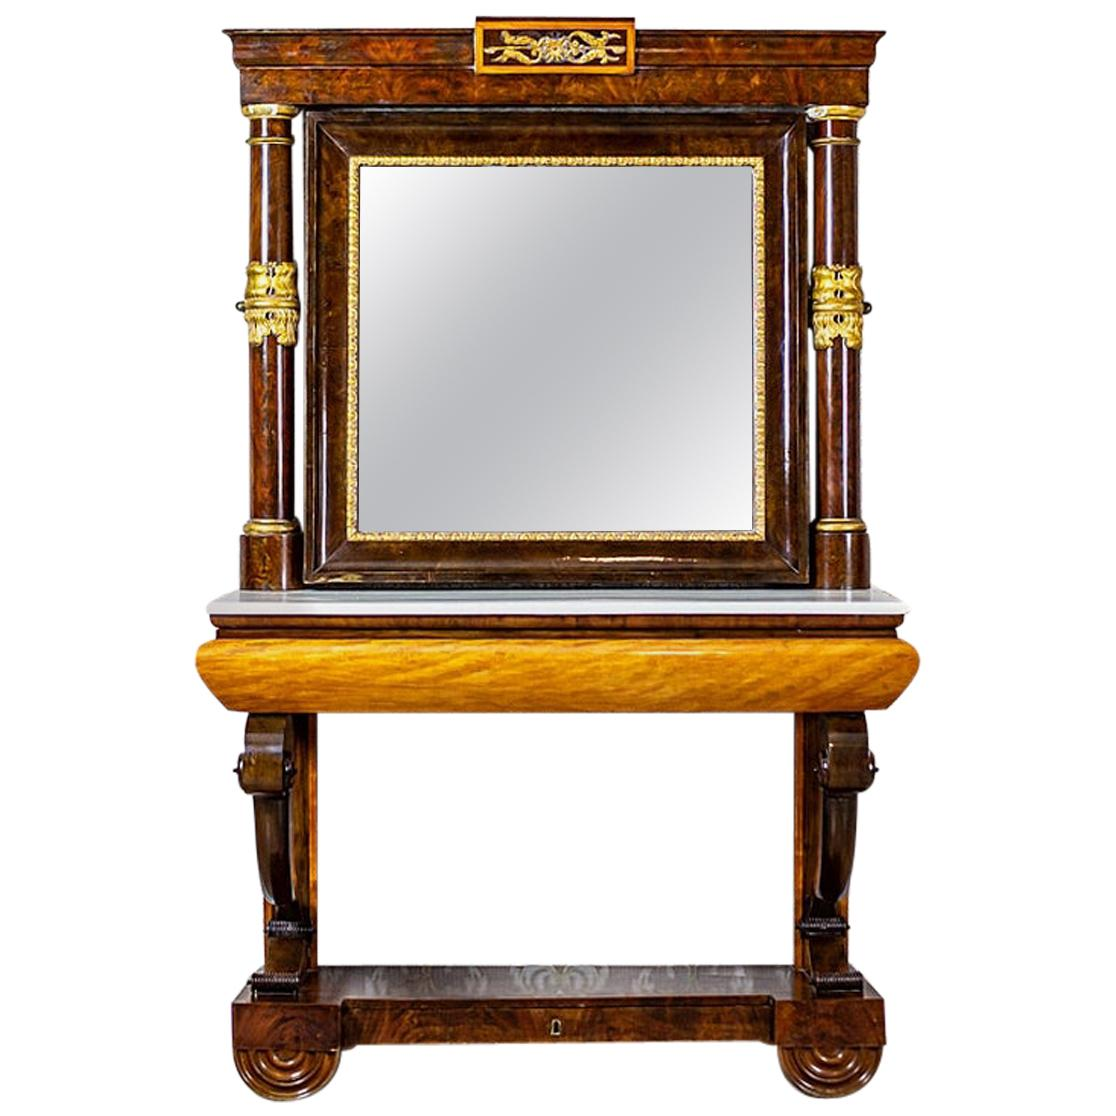 19th Century Console Table with Hinged Mirror